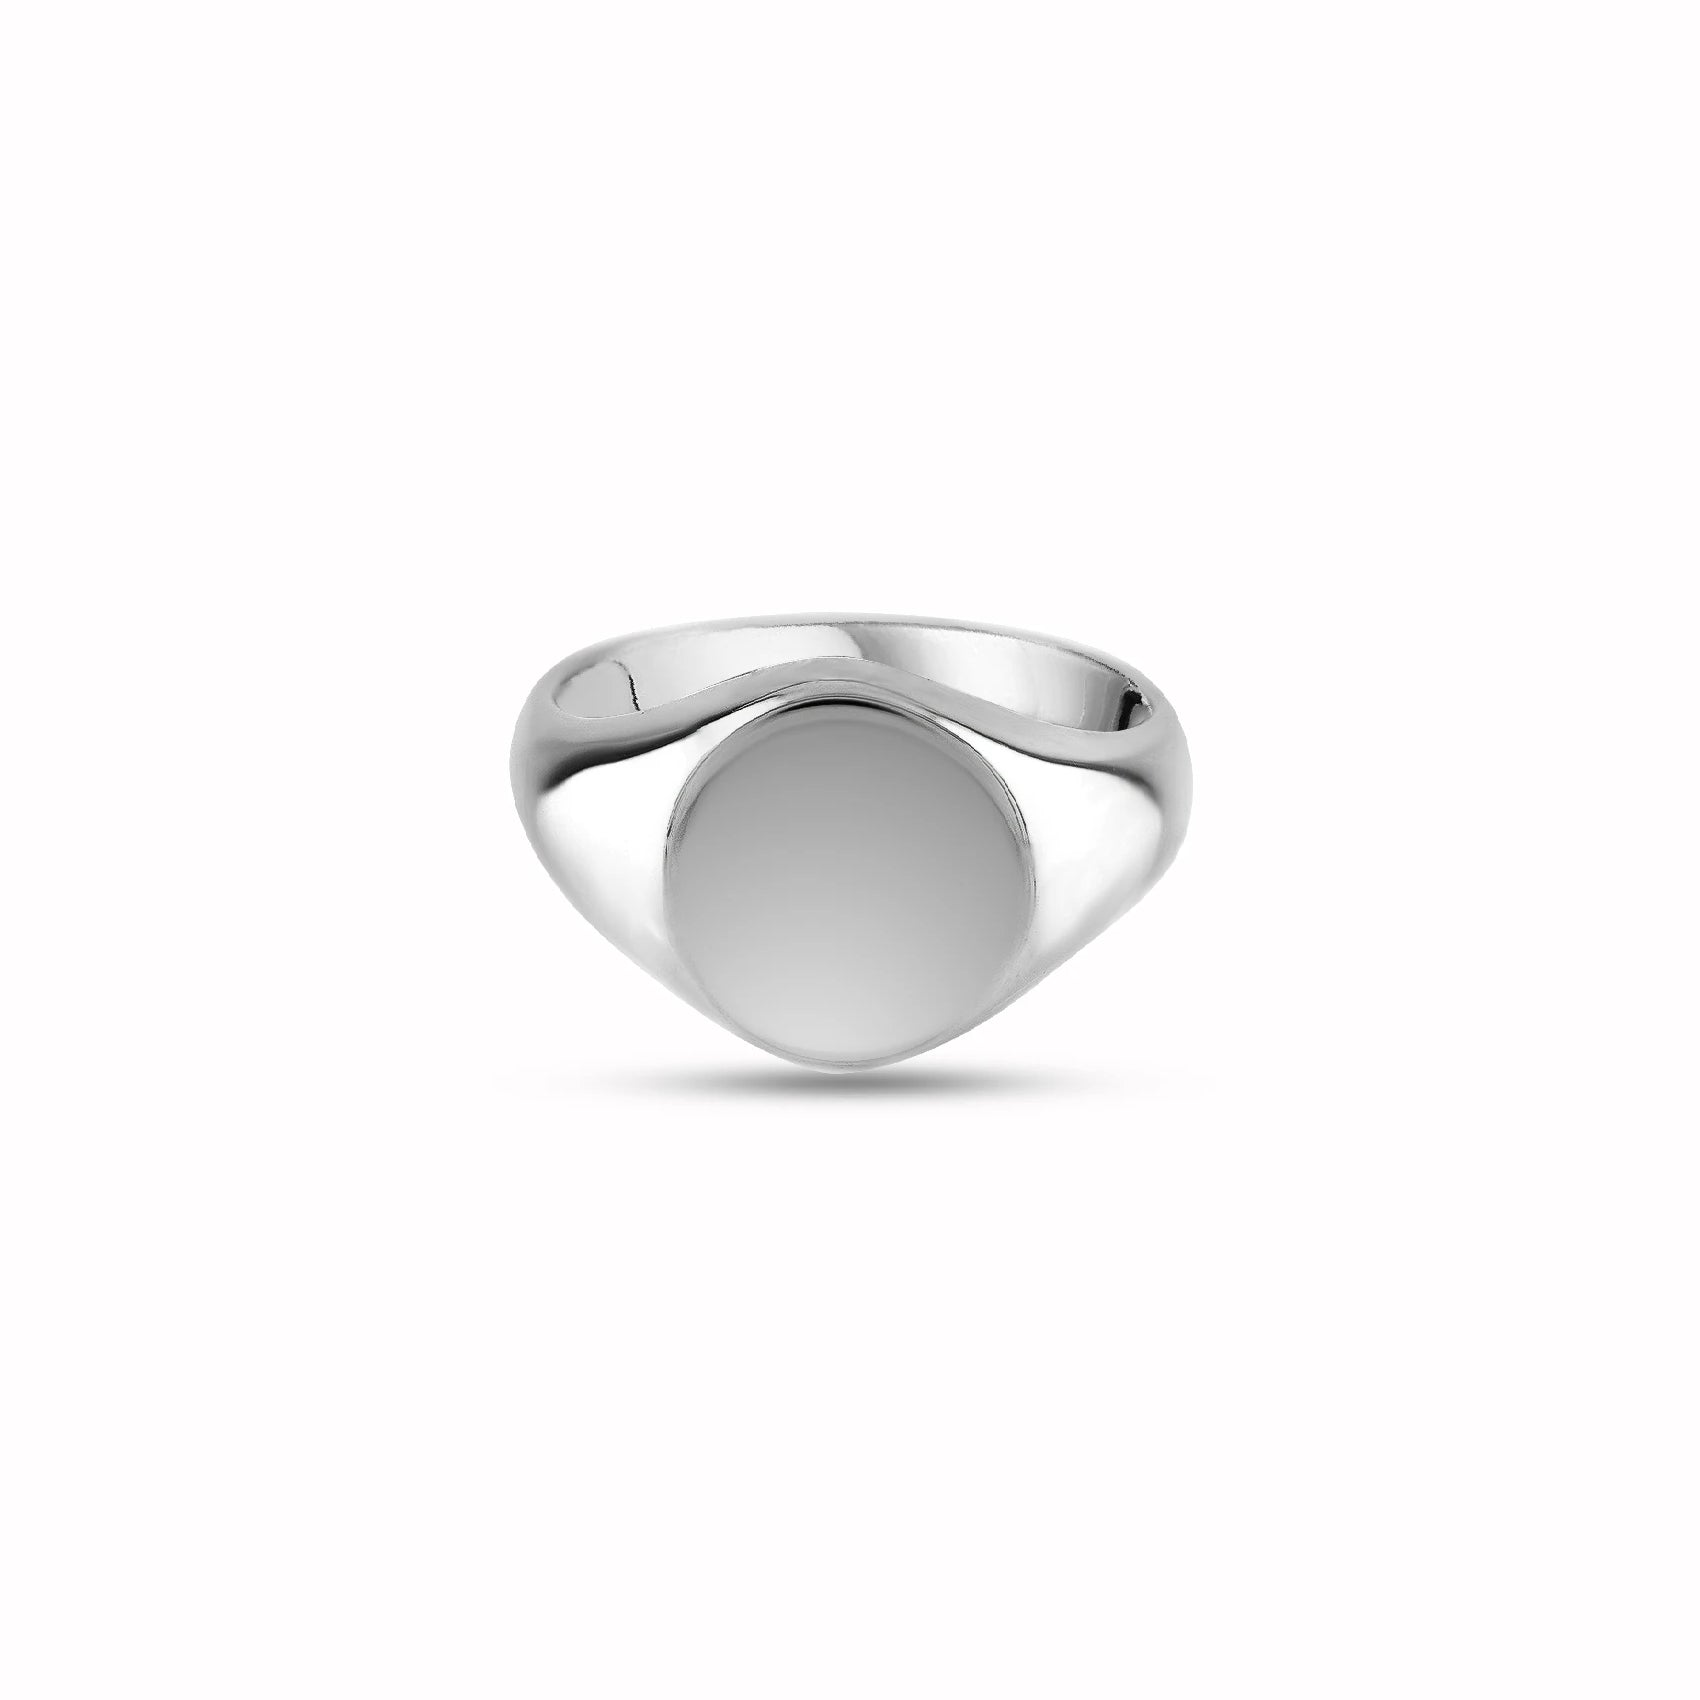 Silver 11mm Round Signet Ring